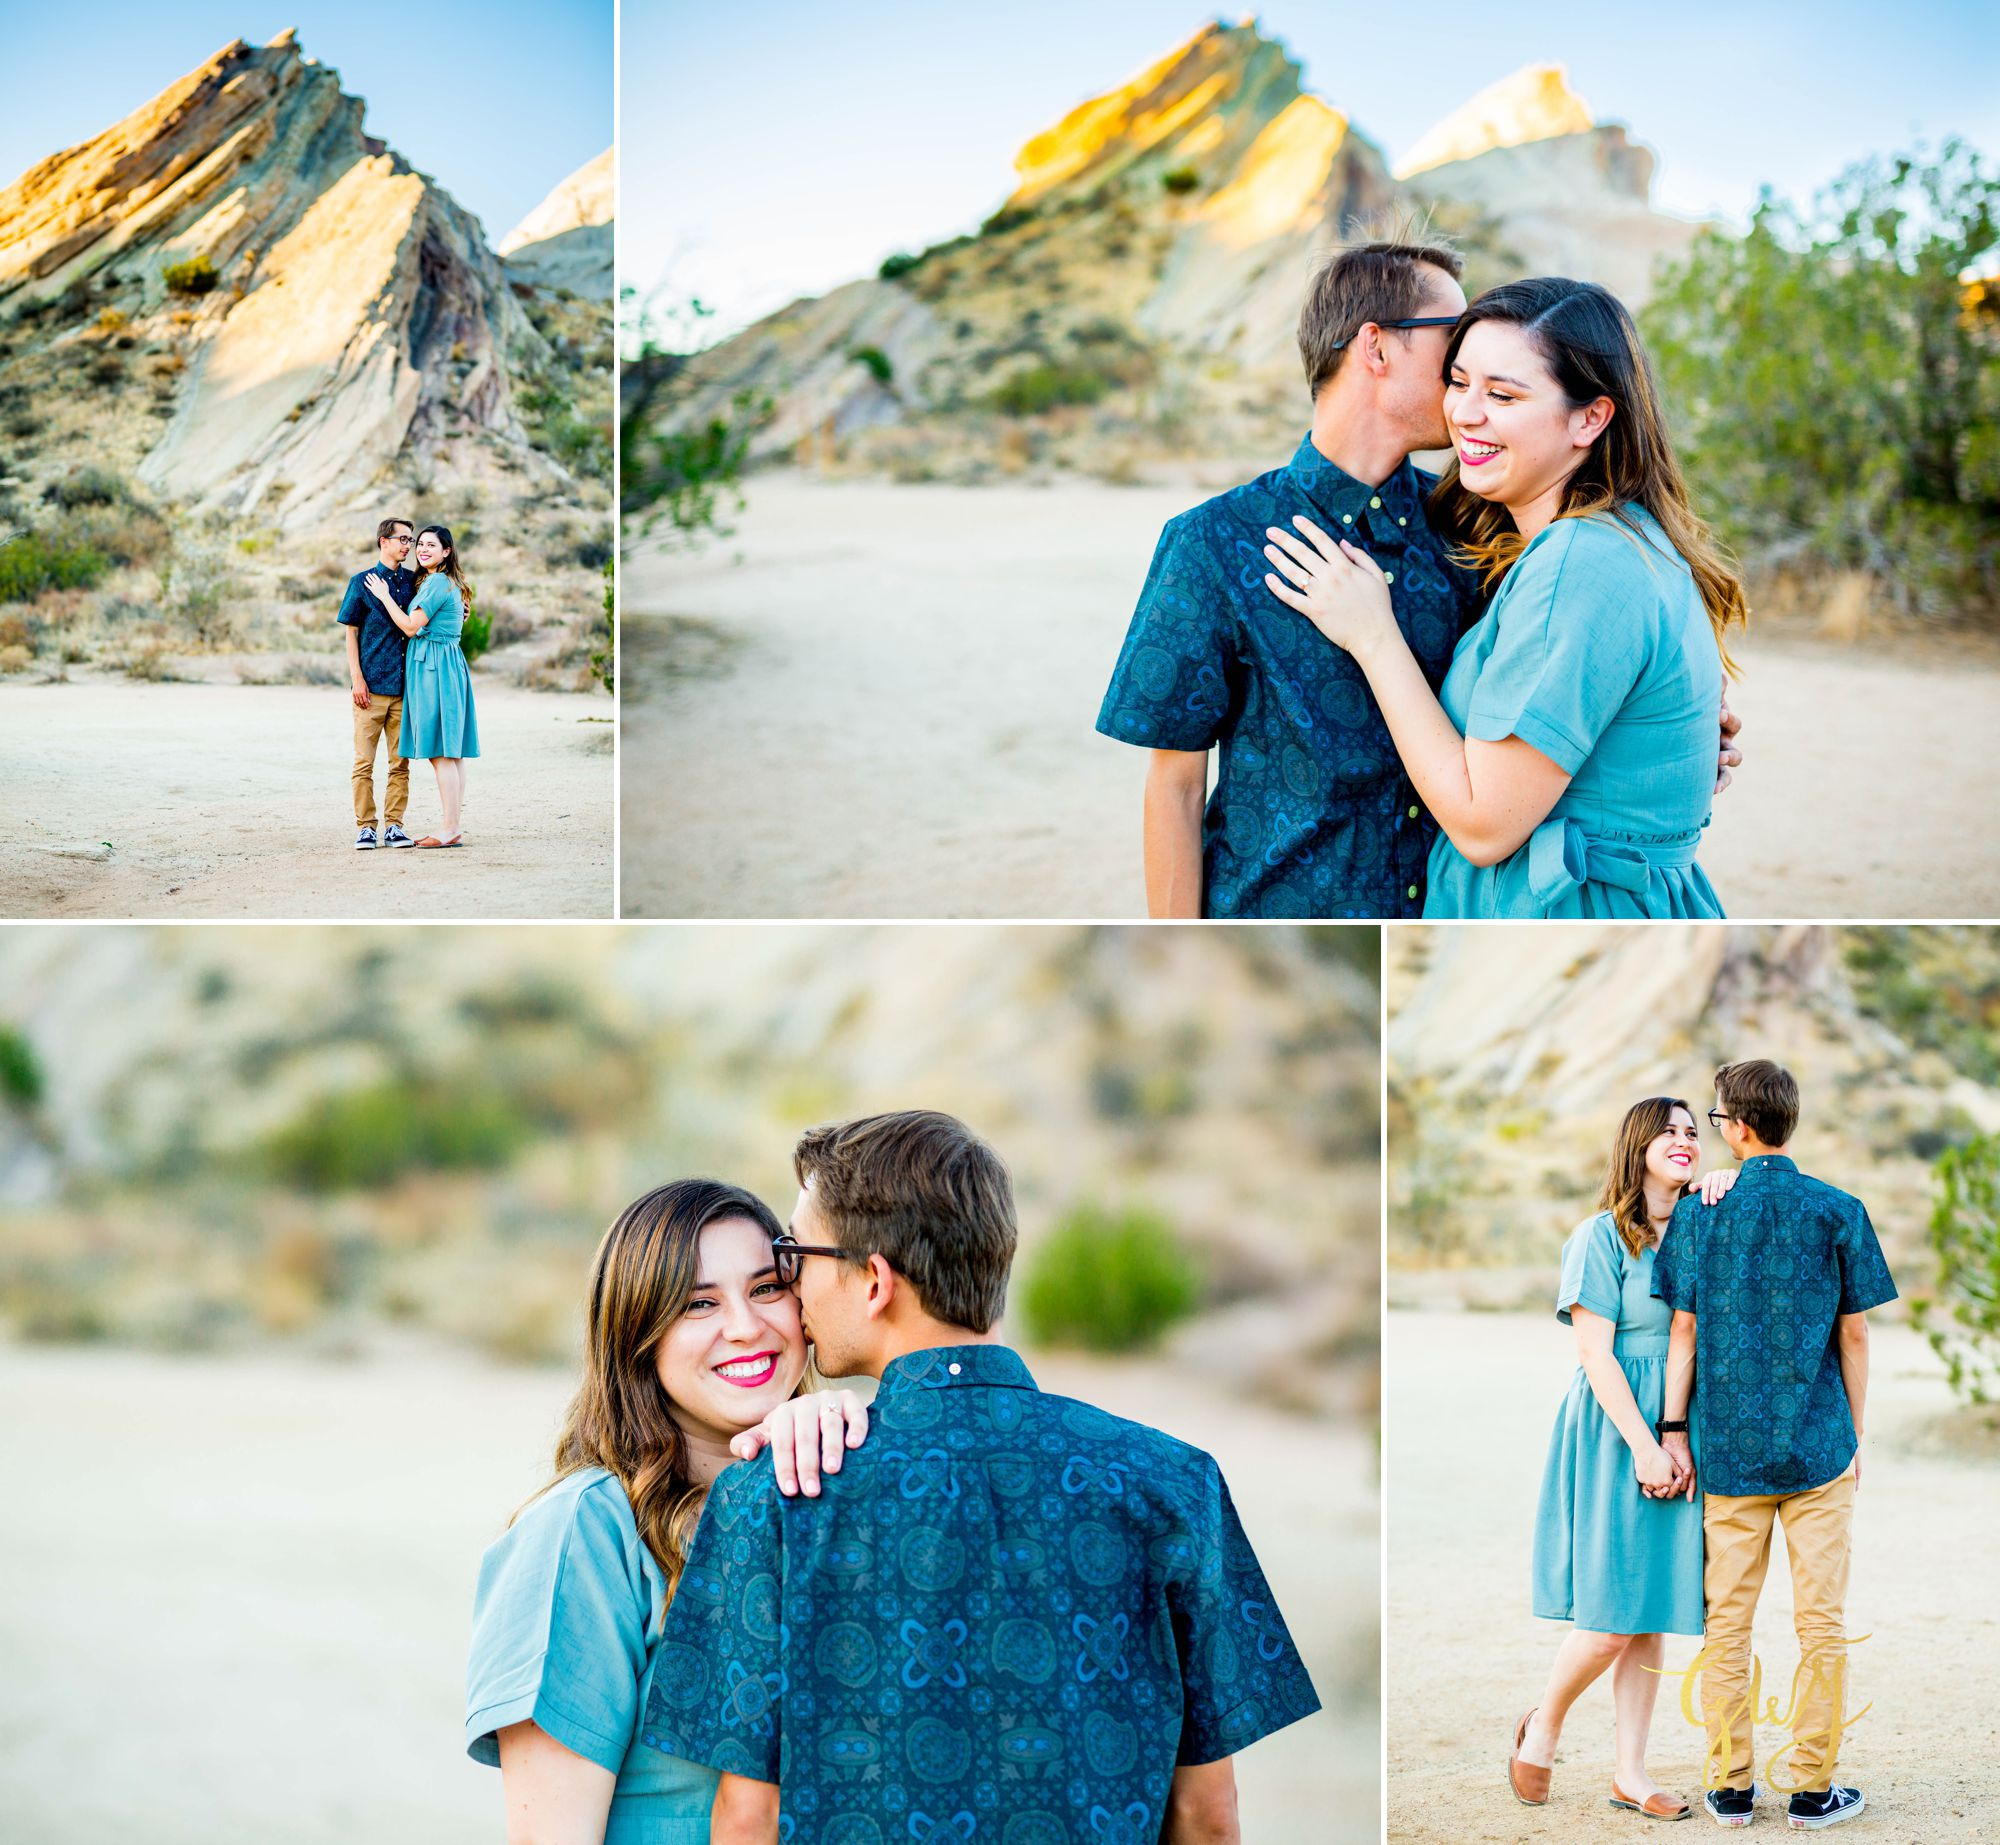 KJ + Maddie Vasquez Rocks Adventurous Hiking Outdoors Engagement Session by Glass Woods Media 3.jpg